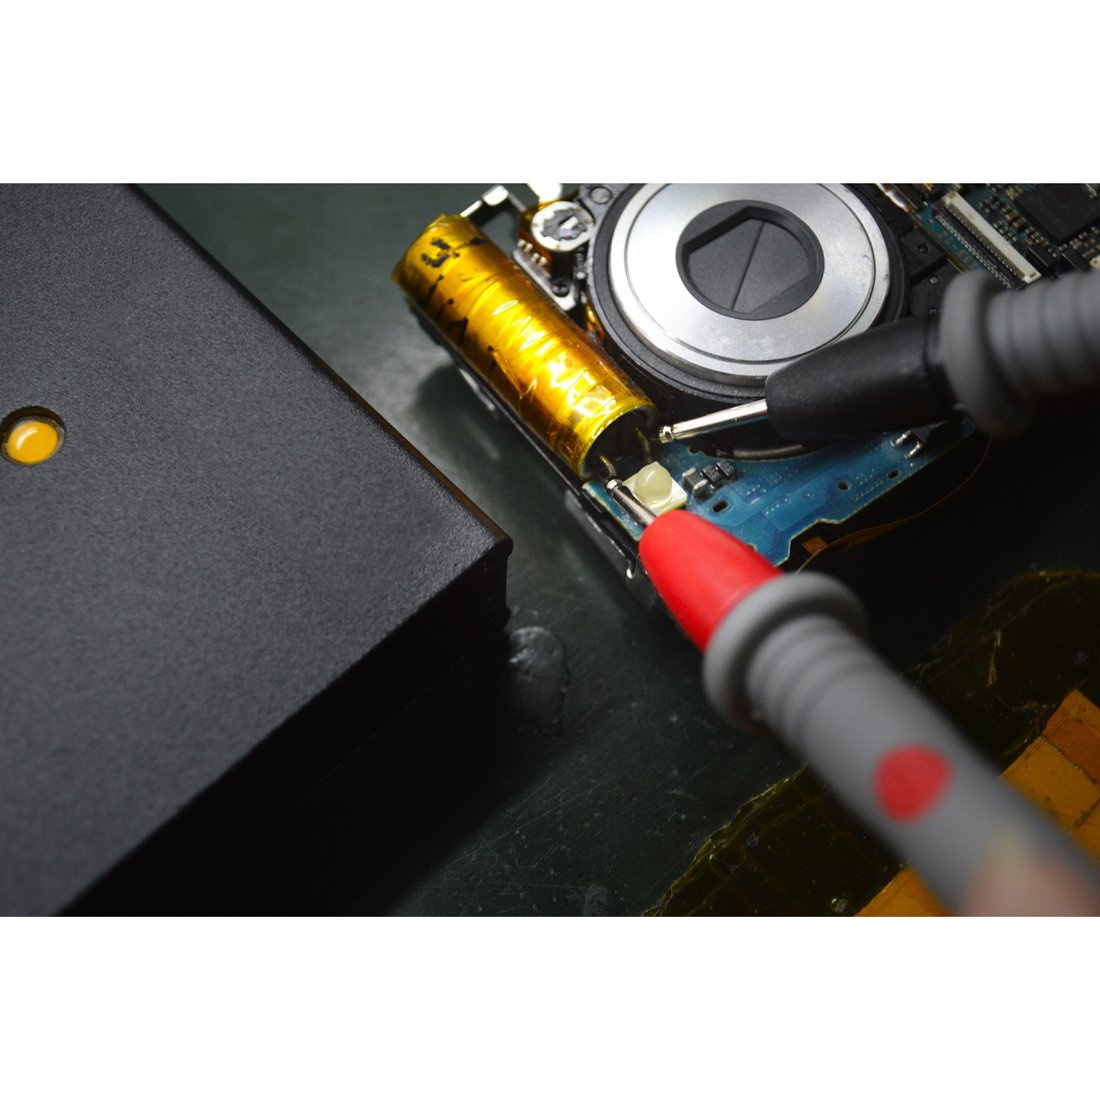 LED Light 4RD Gen Discharger Protection Electrician Voltage Discharging Tool for Electronic Sparkpen Battery Capacitor Discharge Pen